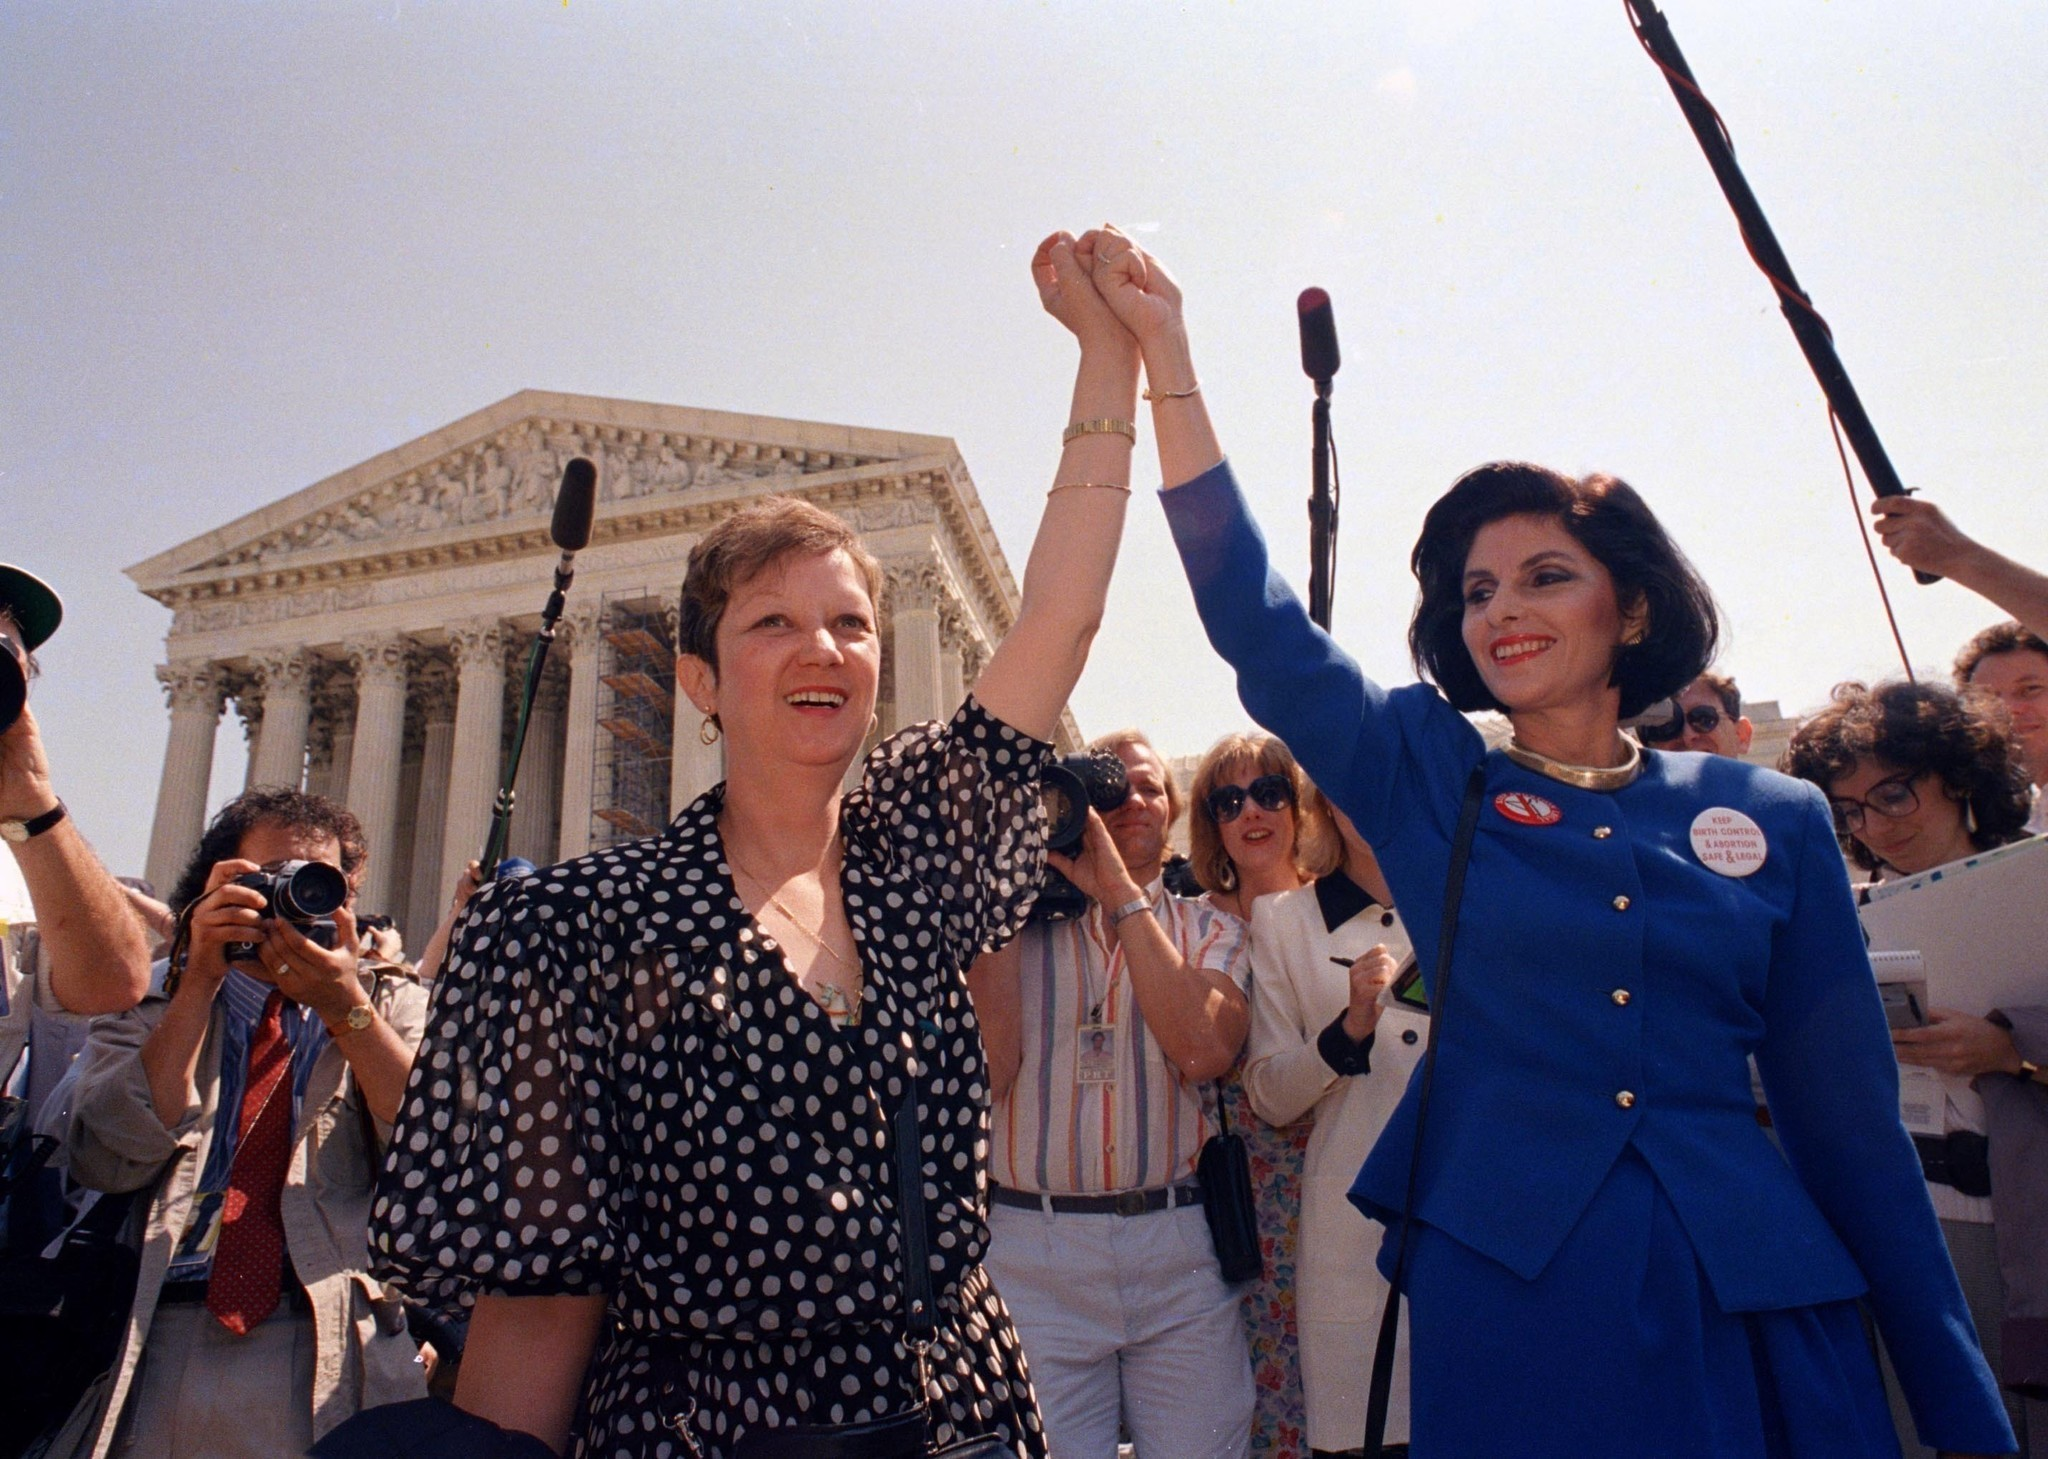 Analysis: Here's why overturning Roe v. Wade wouldn't turn back the clock to 1973